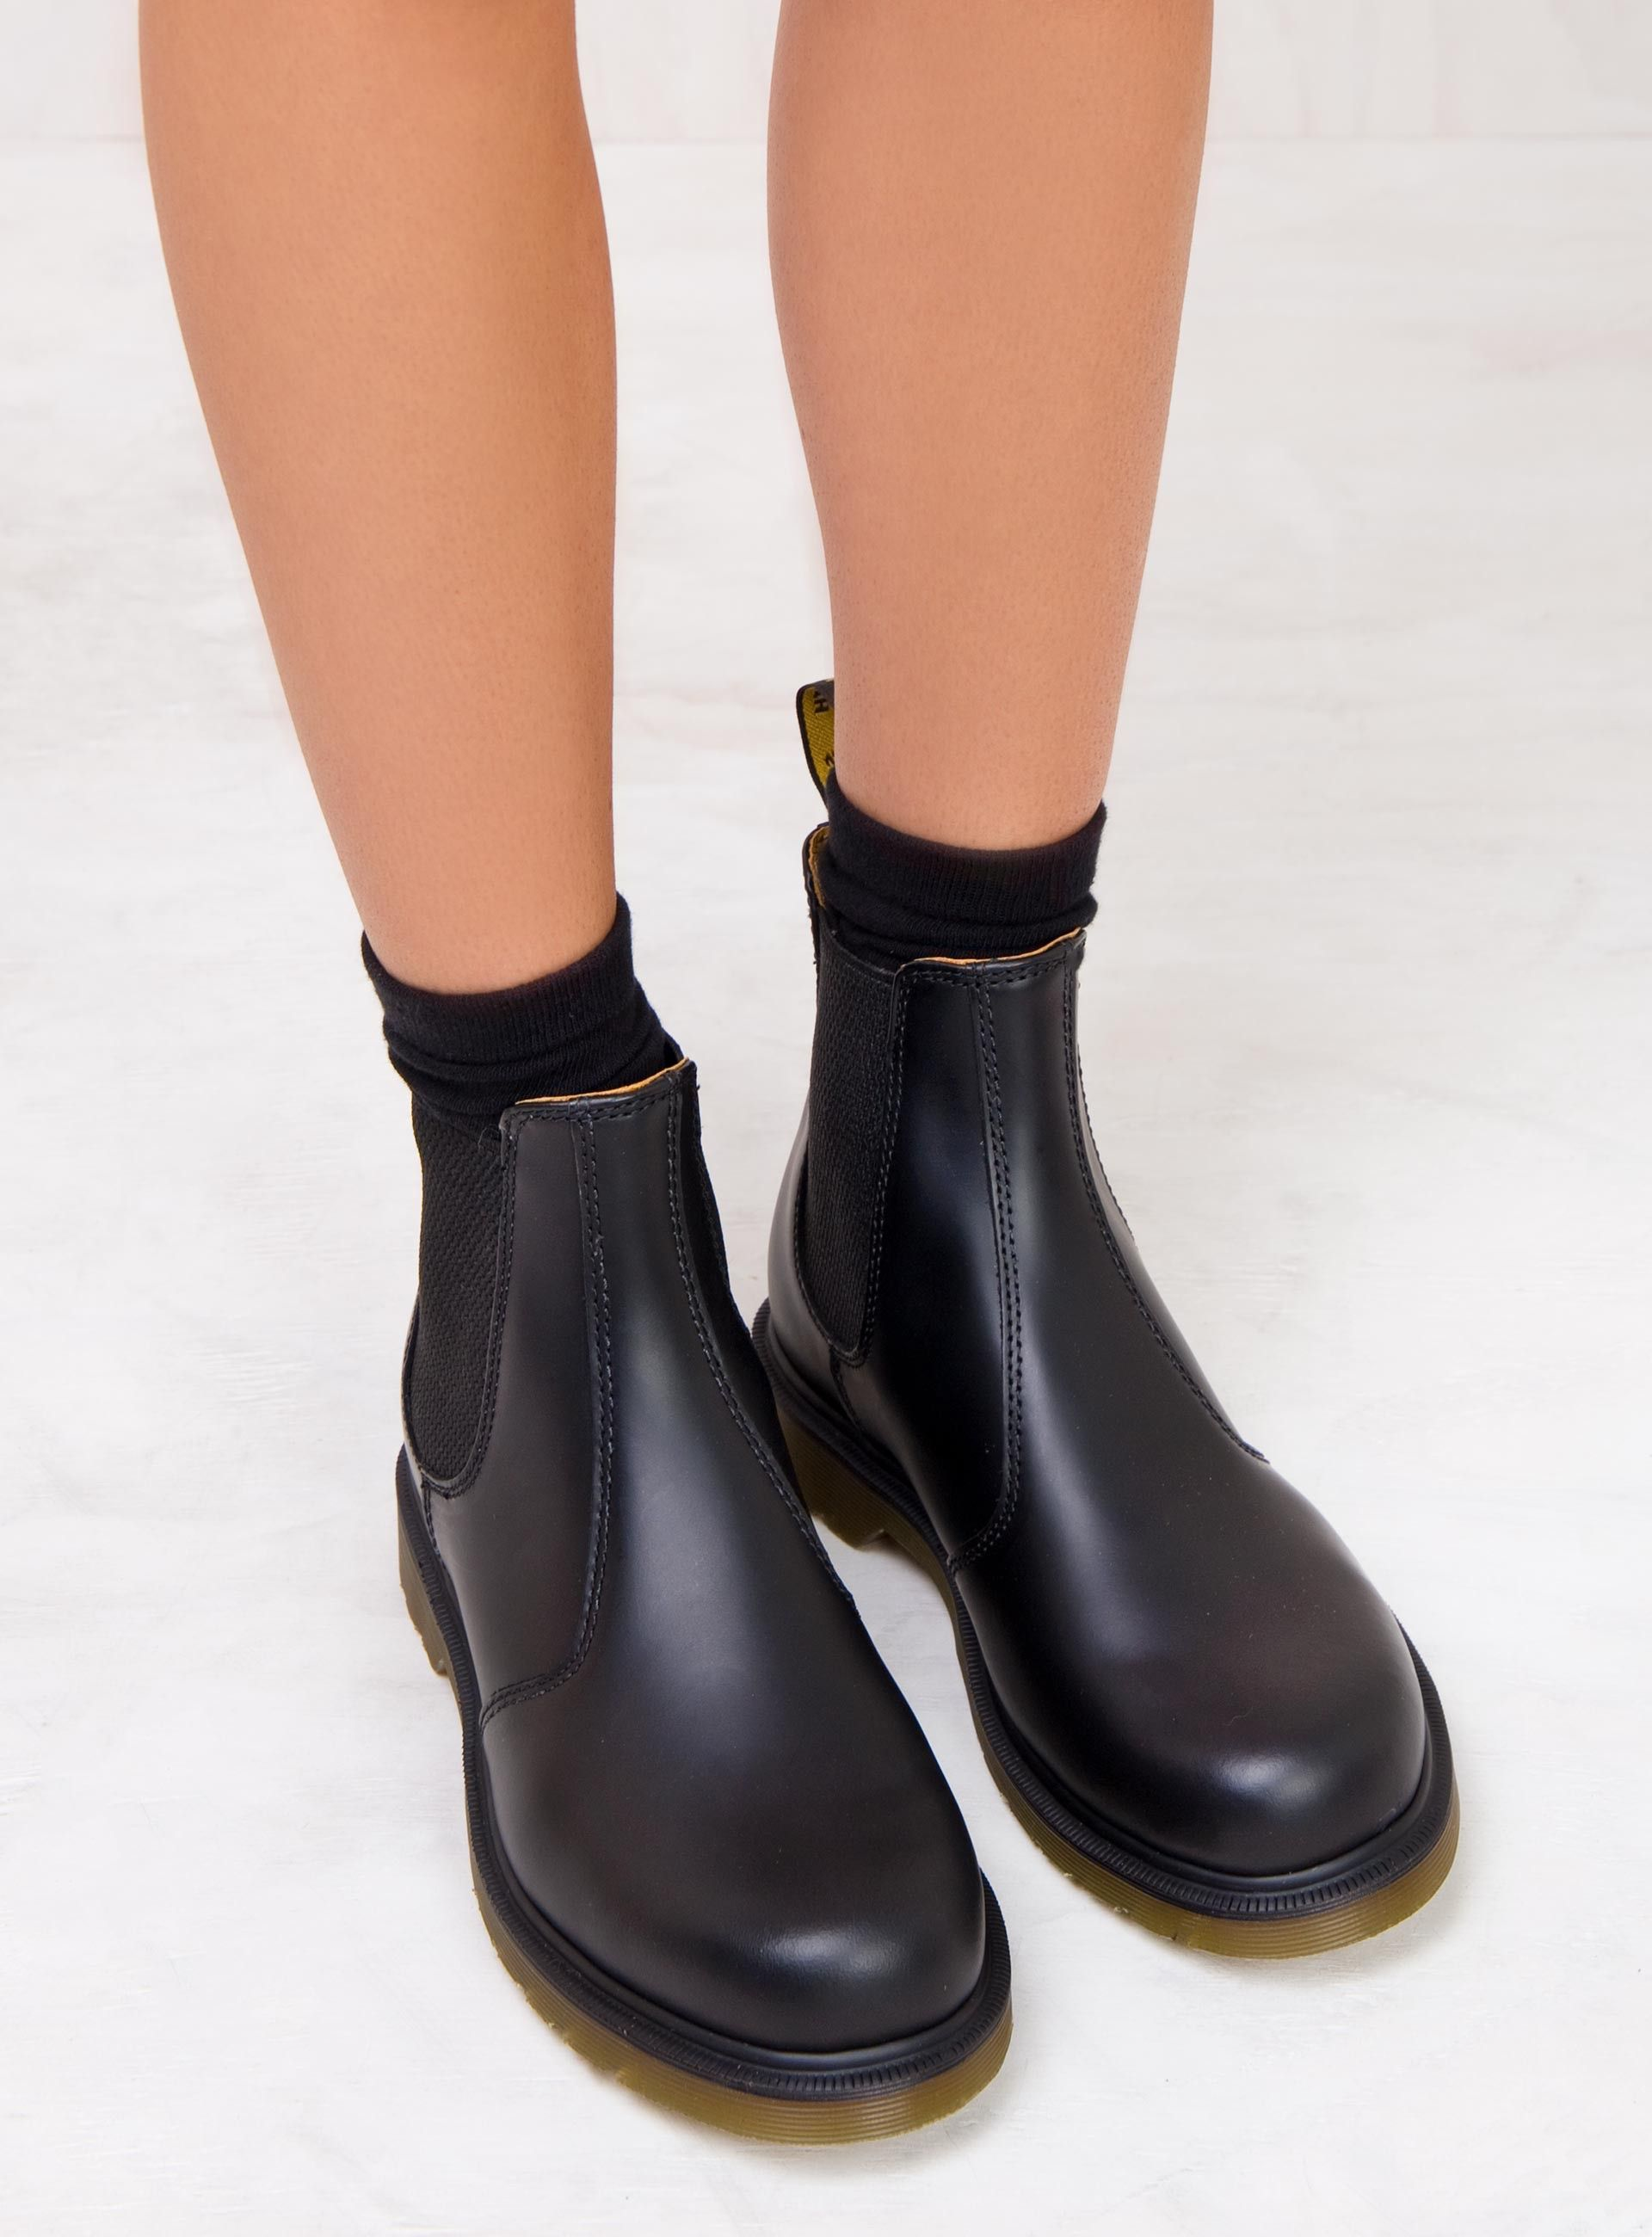 834b06ab4 Dr. Martens 2976 Chelsea Boots Winter Chelsea Boots, Black Chelsea Boots, Chelsea  Boots